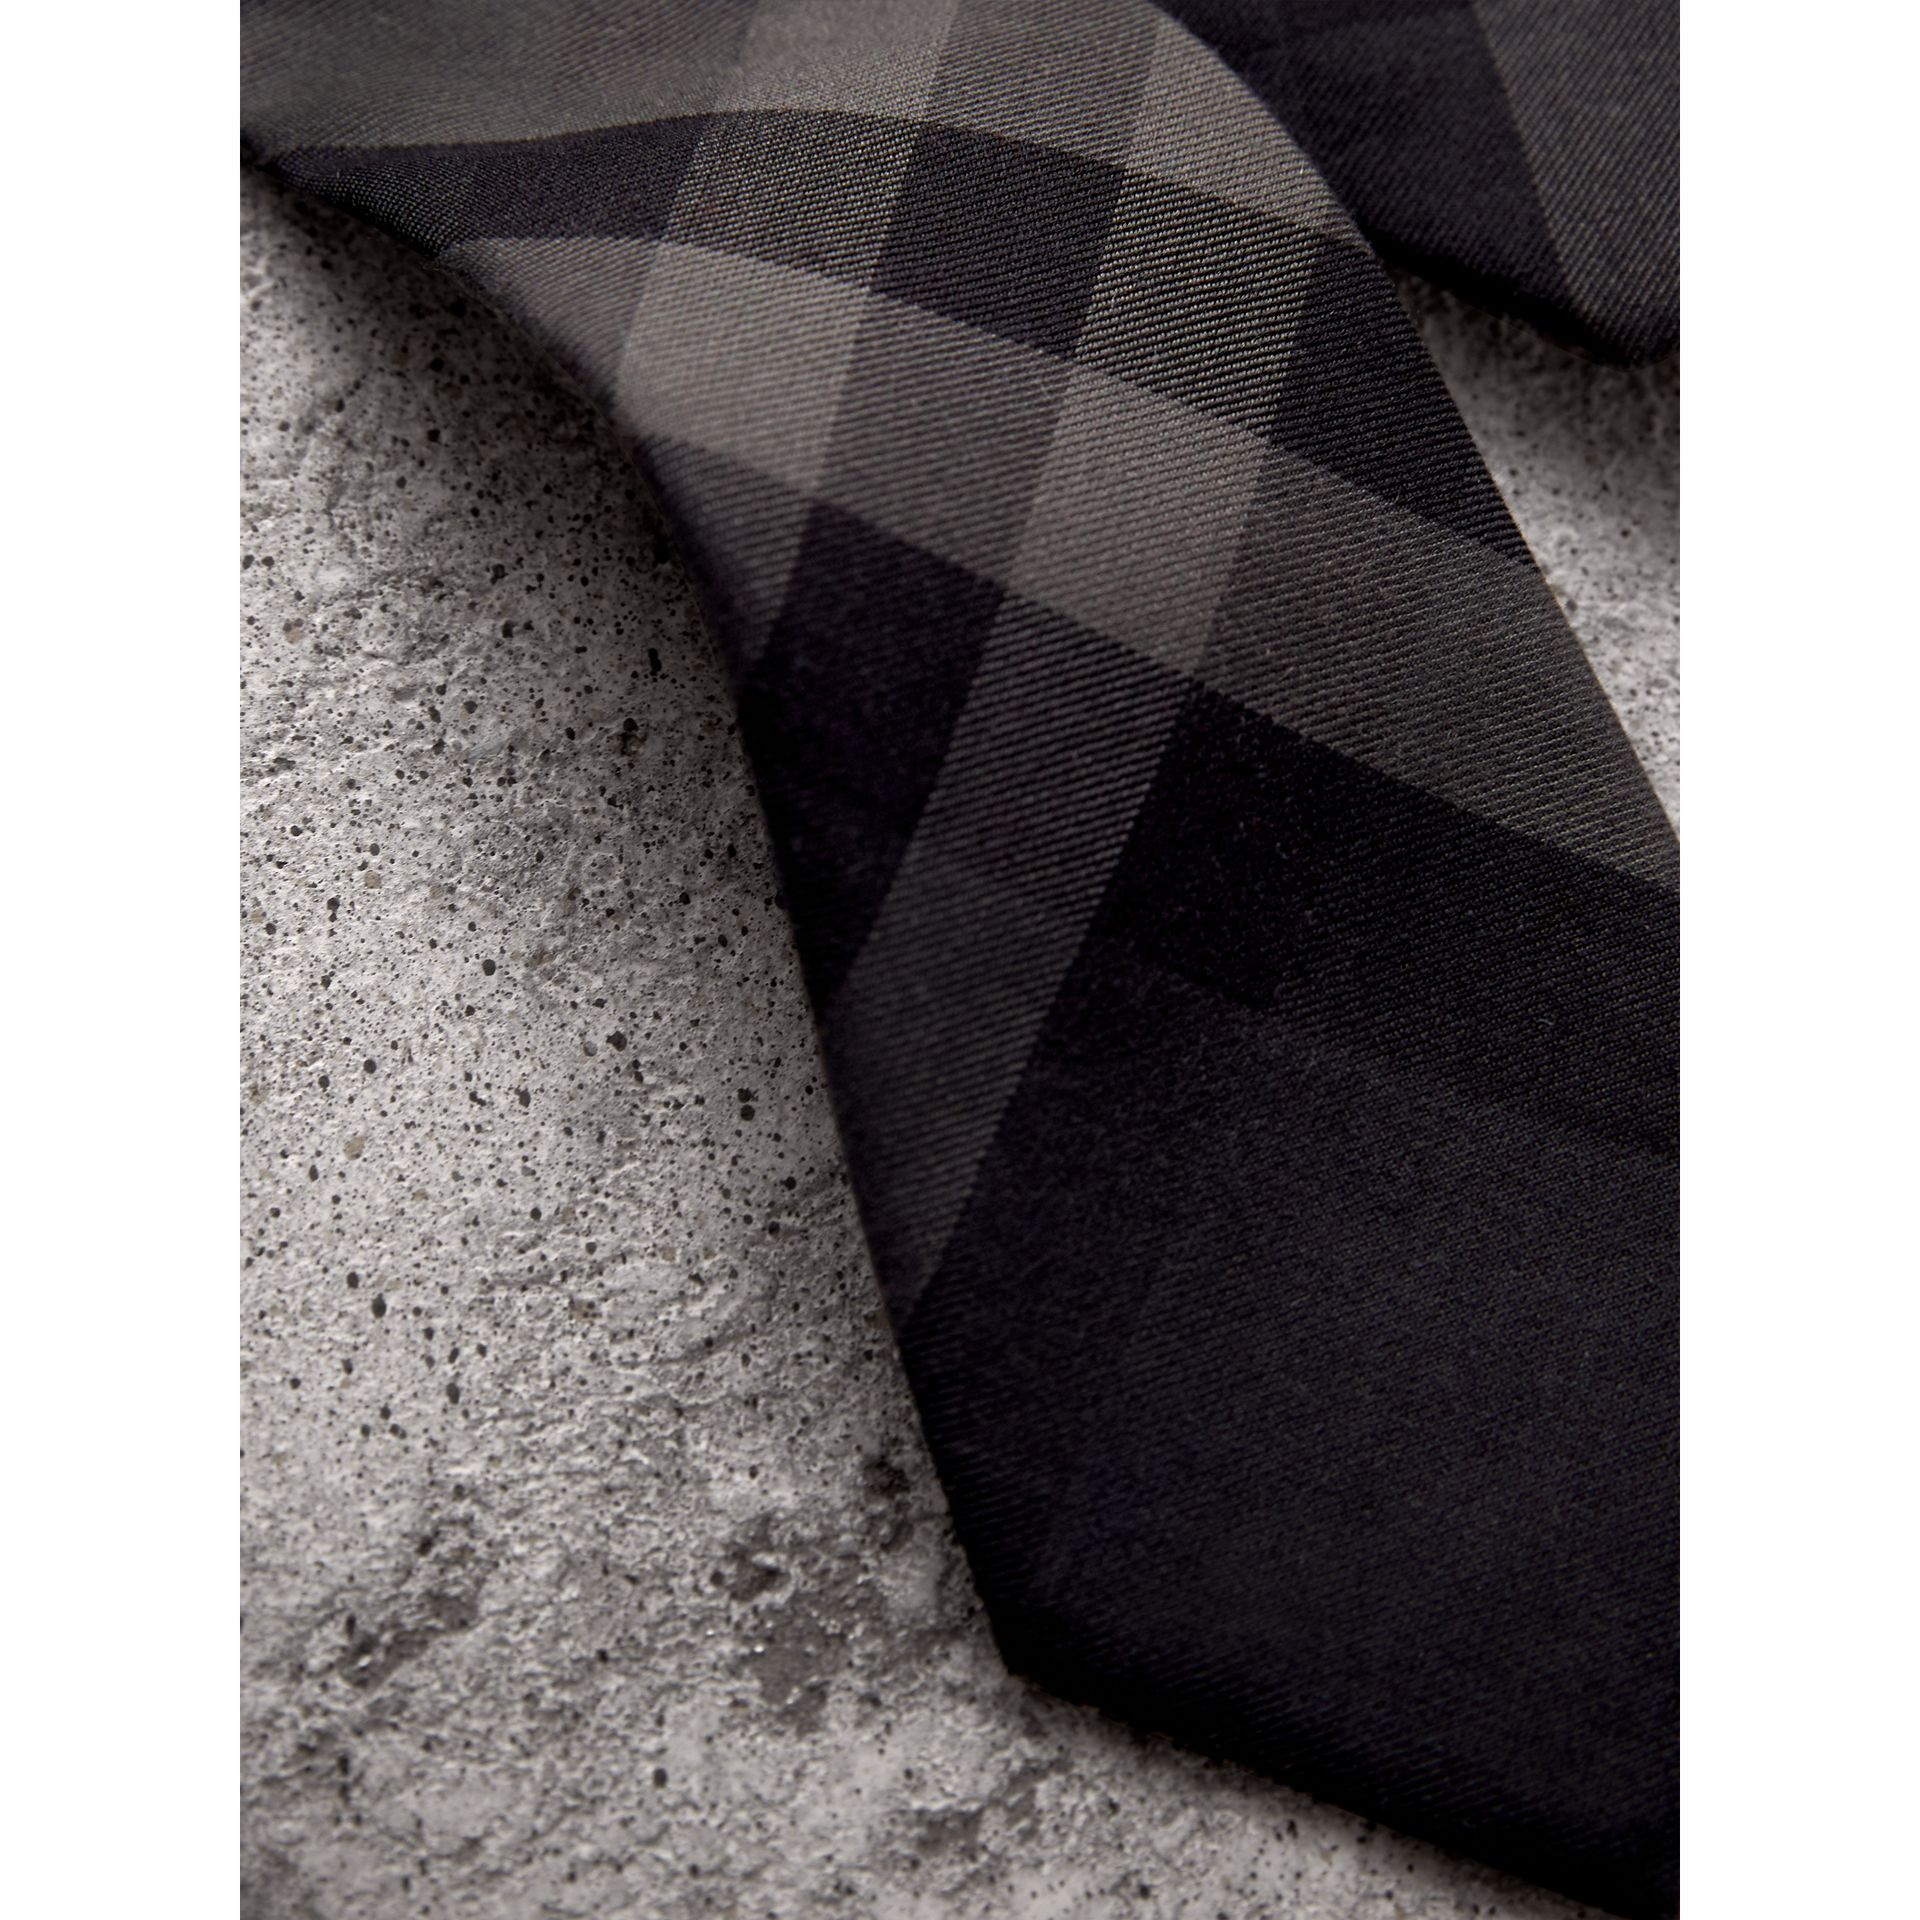 Modern Cut Check Cotton Cashmere Tie in Charcoal - Men | Burberry - gallery image 2